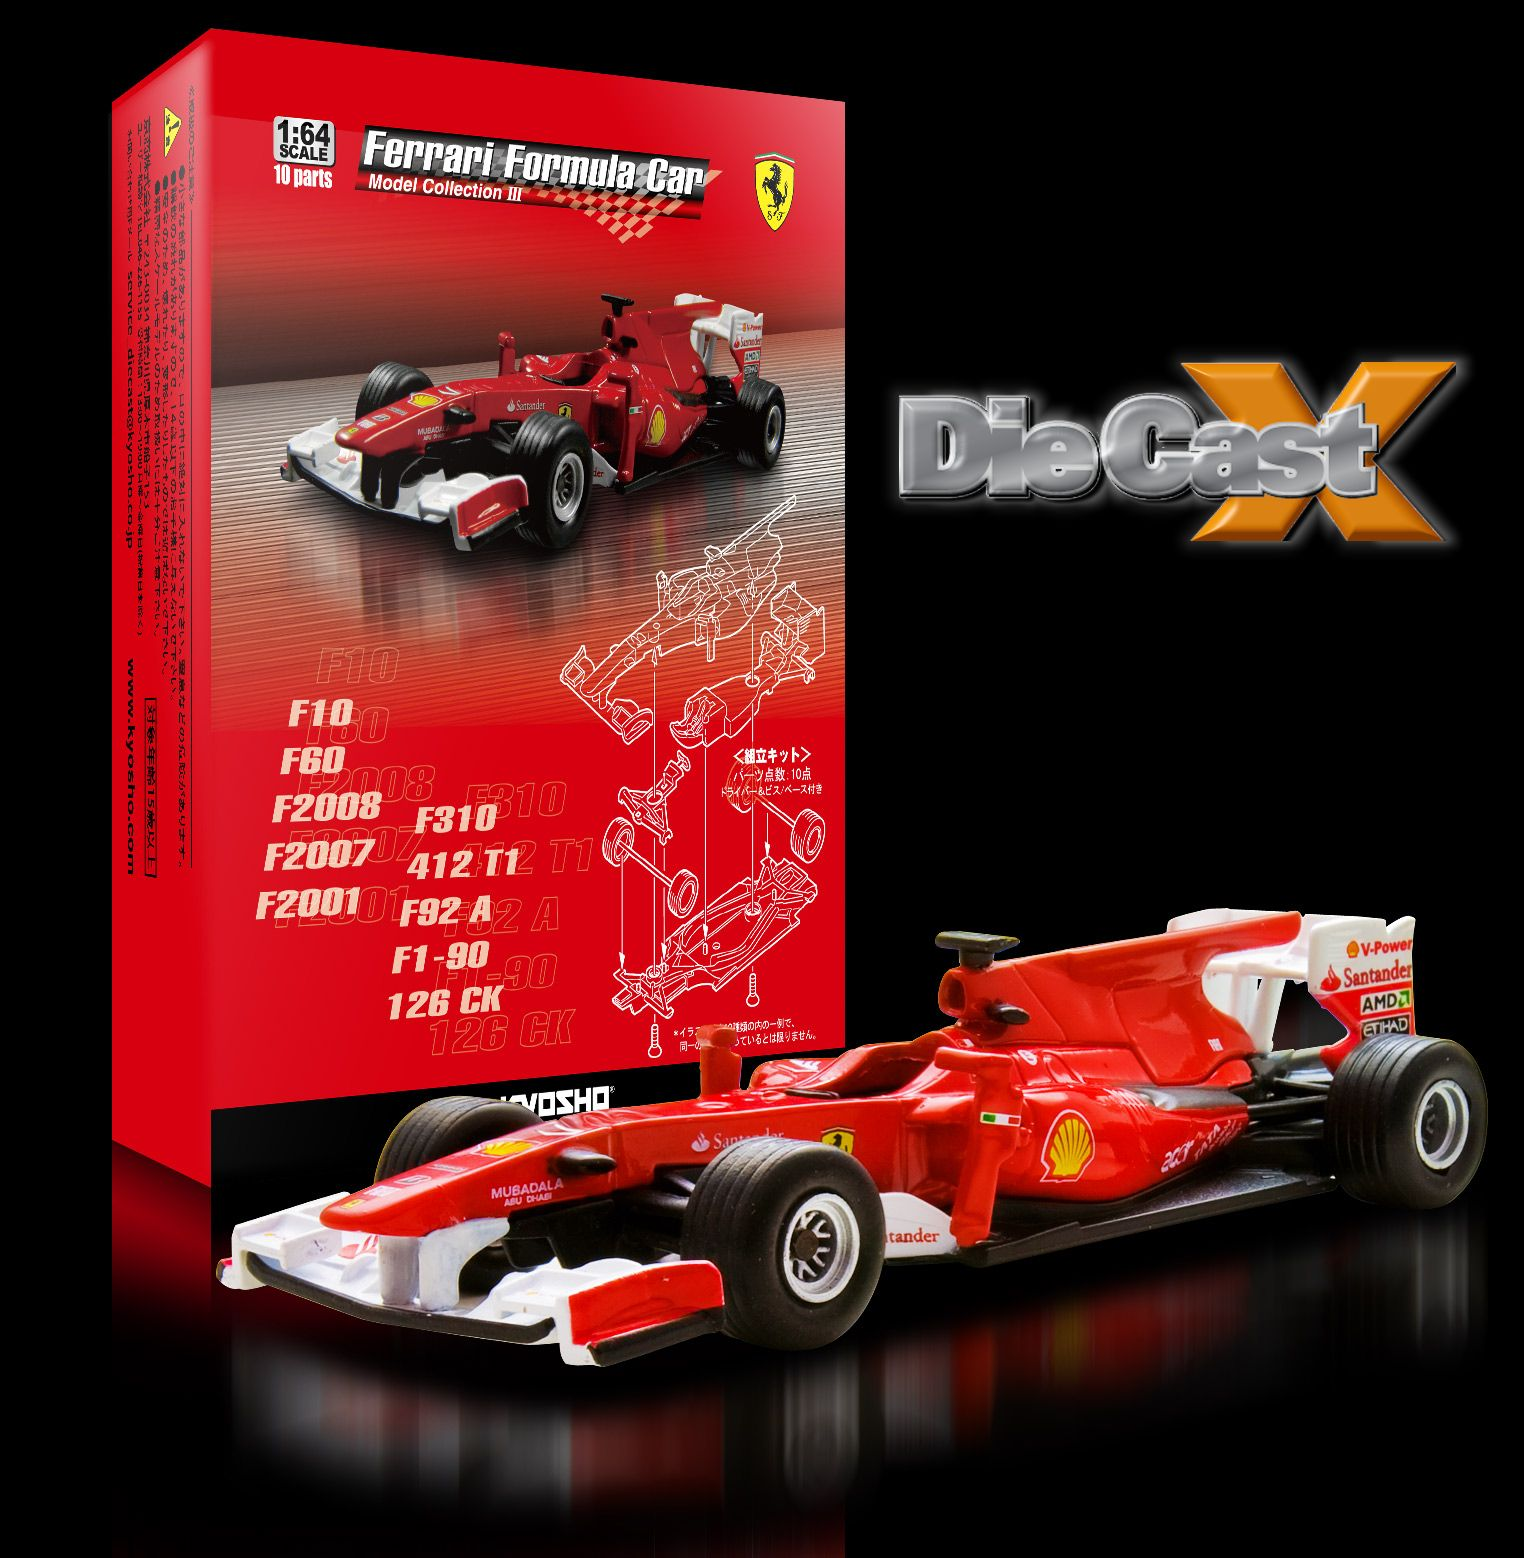 FIRST LOOK! Kyosho's 1:64 Racing Ferrari Collection!